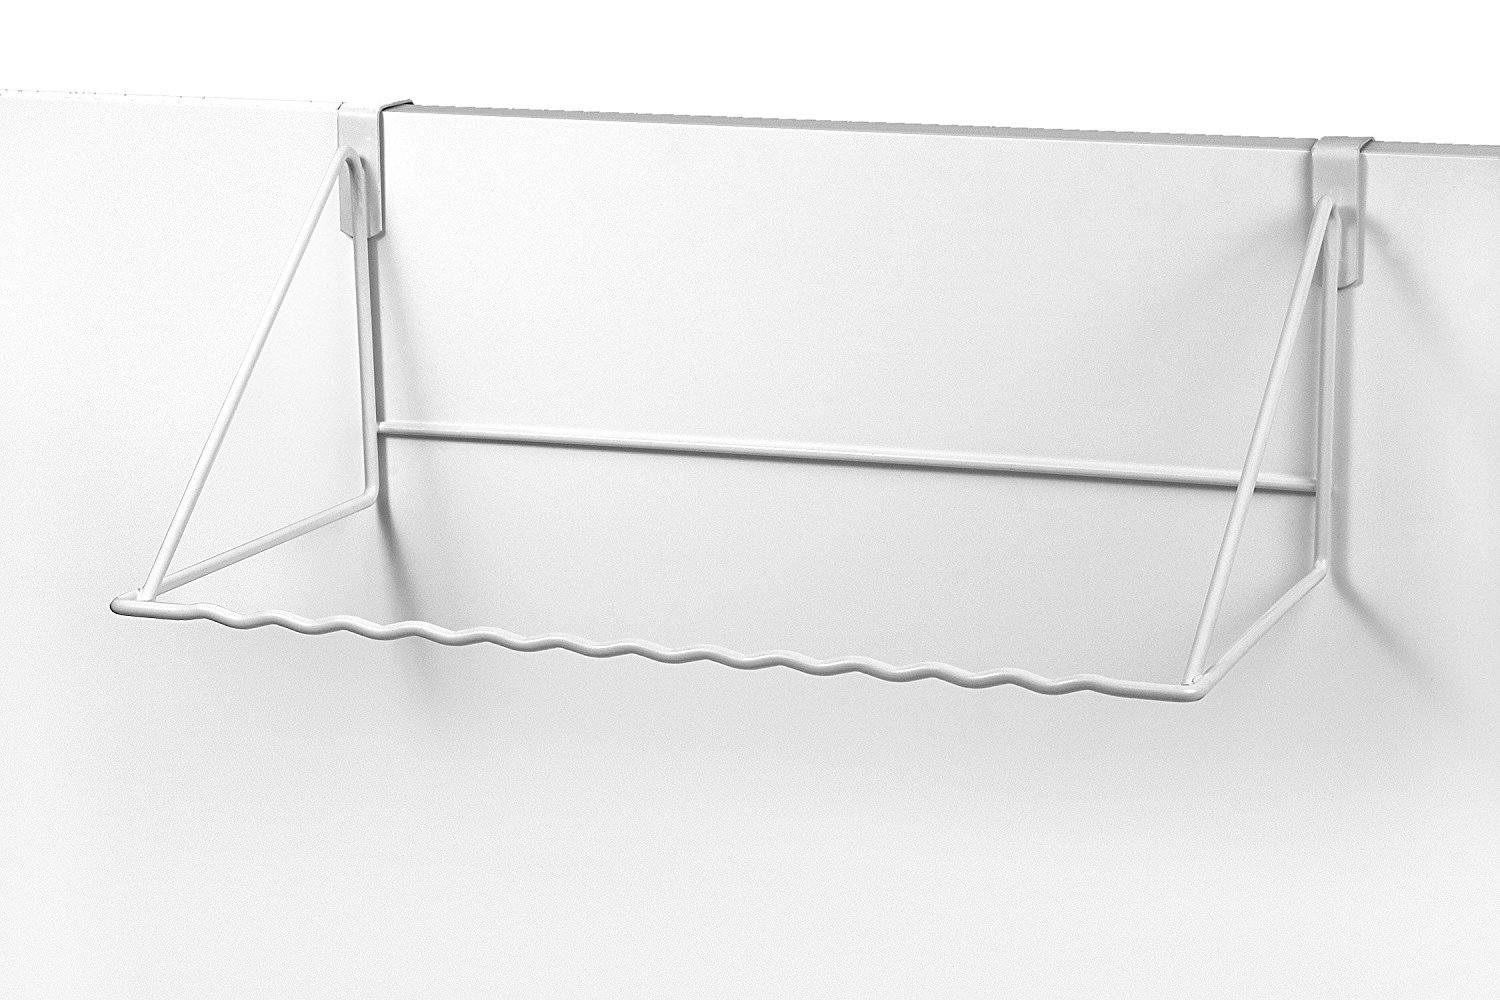 Merveilleux Over The Door Clothes Hanging Rack, WhitePerfect Solution For Cramped  Closets And Extra Hanging Space For Visitors By Spectrum Diversified